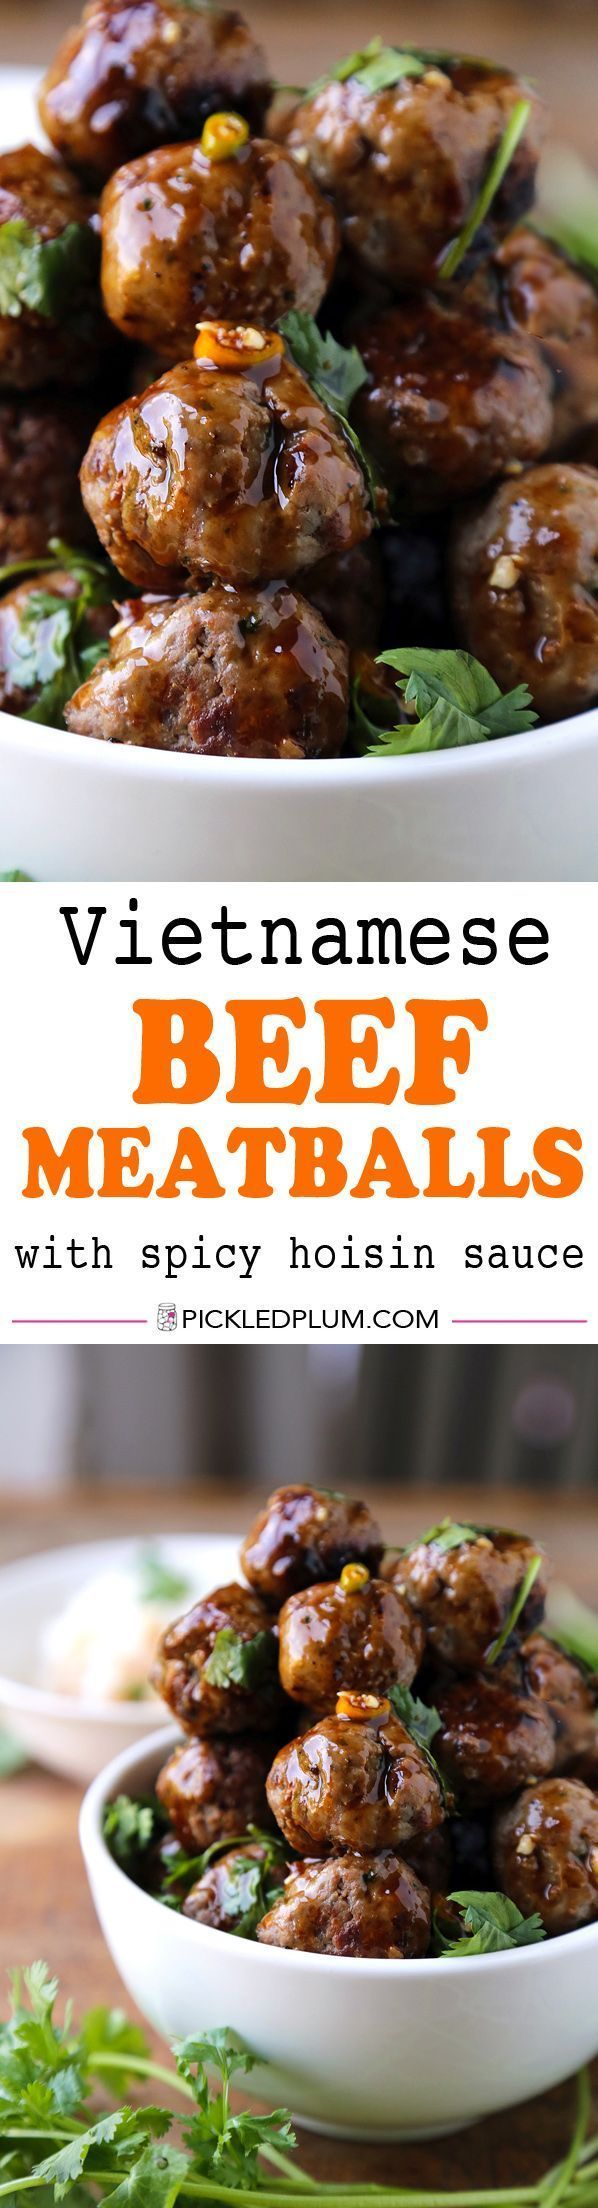 Vietnamese Beef Meatballs - One of my favorite recipes and SO easy to make! Vietnamese Beef Meatballs with sweet and spicy hoisin sauce. Recipe, meat, main, dinner, Asian | http://pickledplum.com